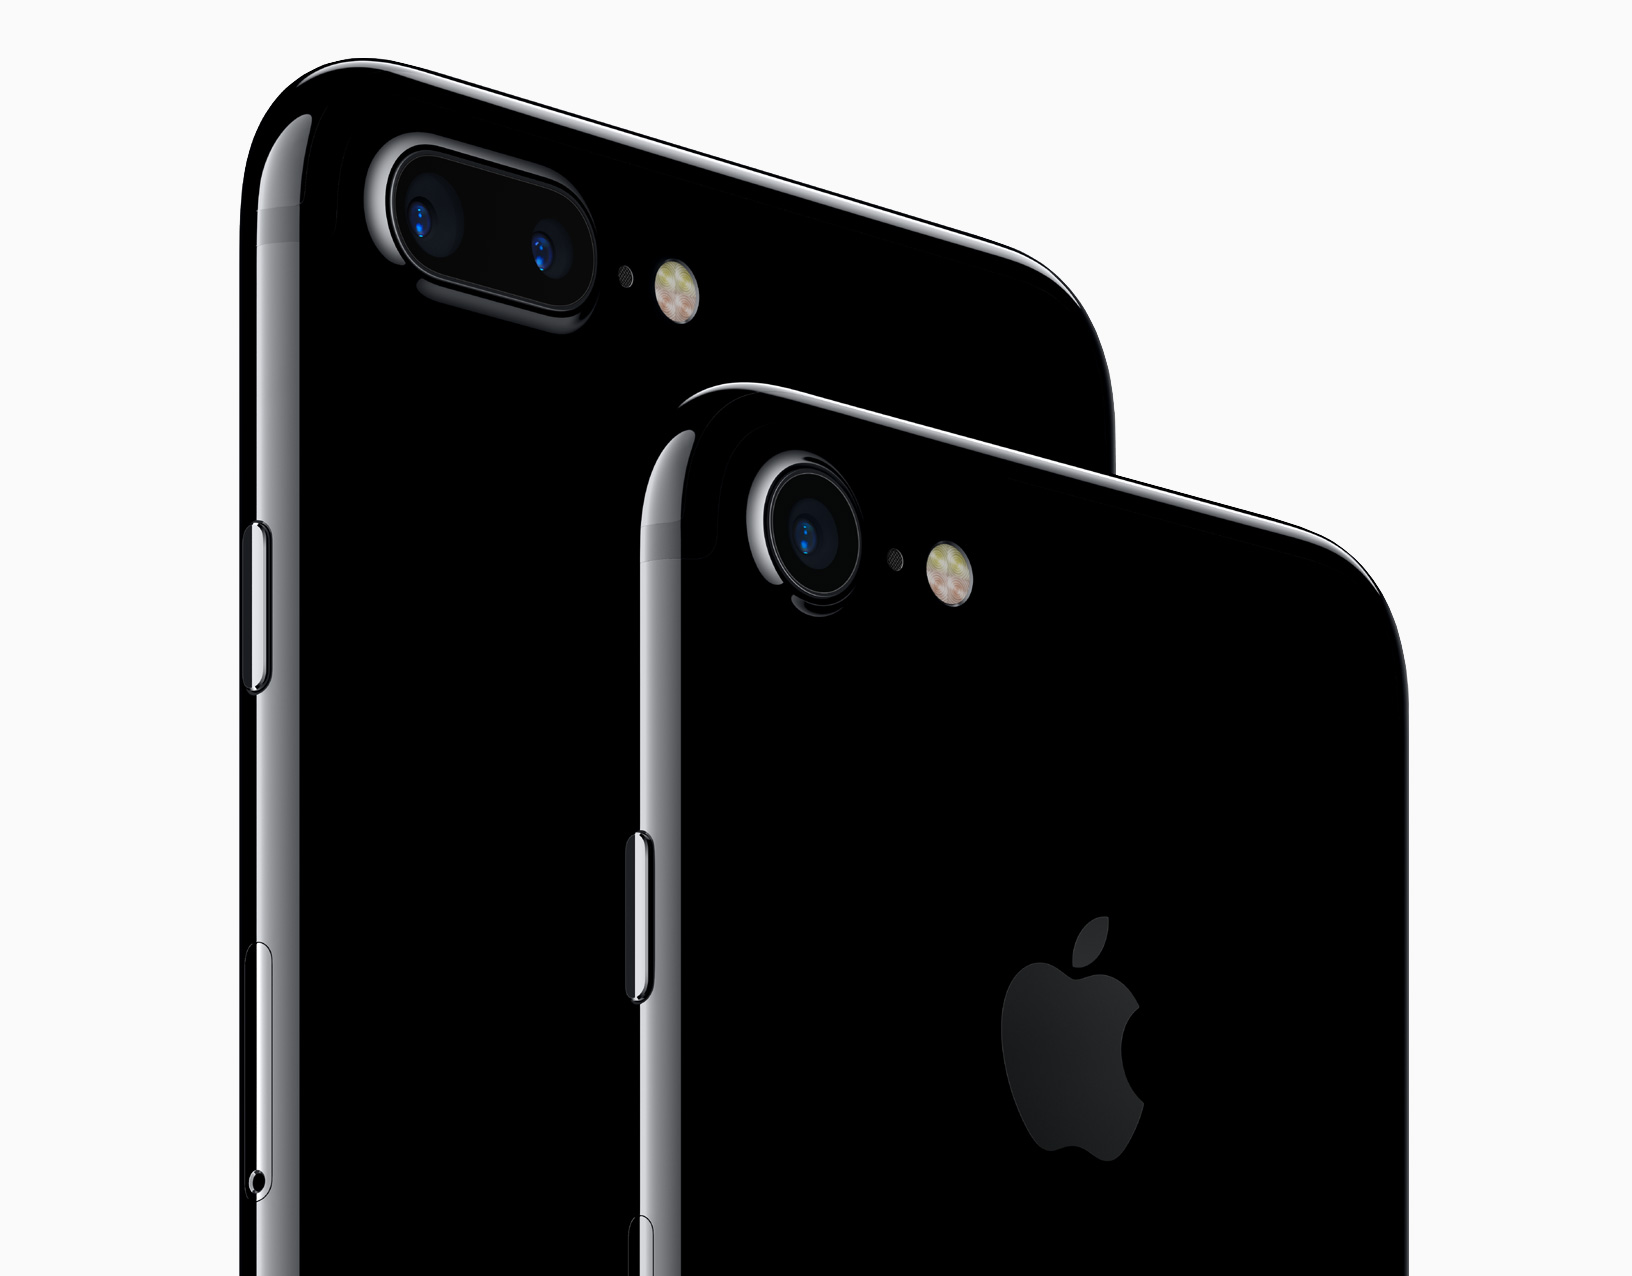 New iPhone 7 and iPhone 7 Plus Jet Black